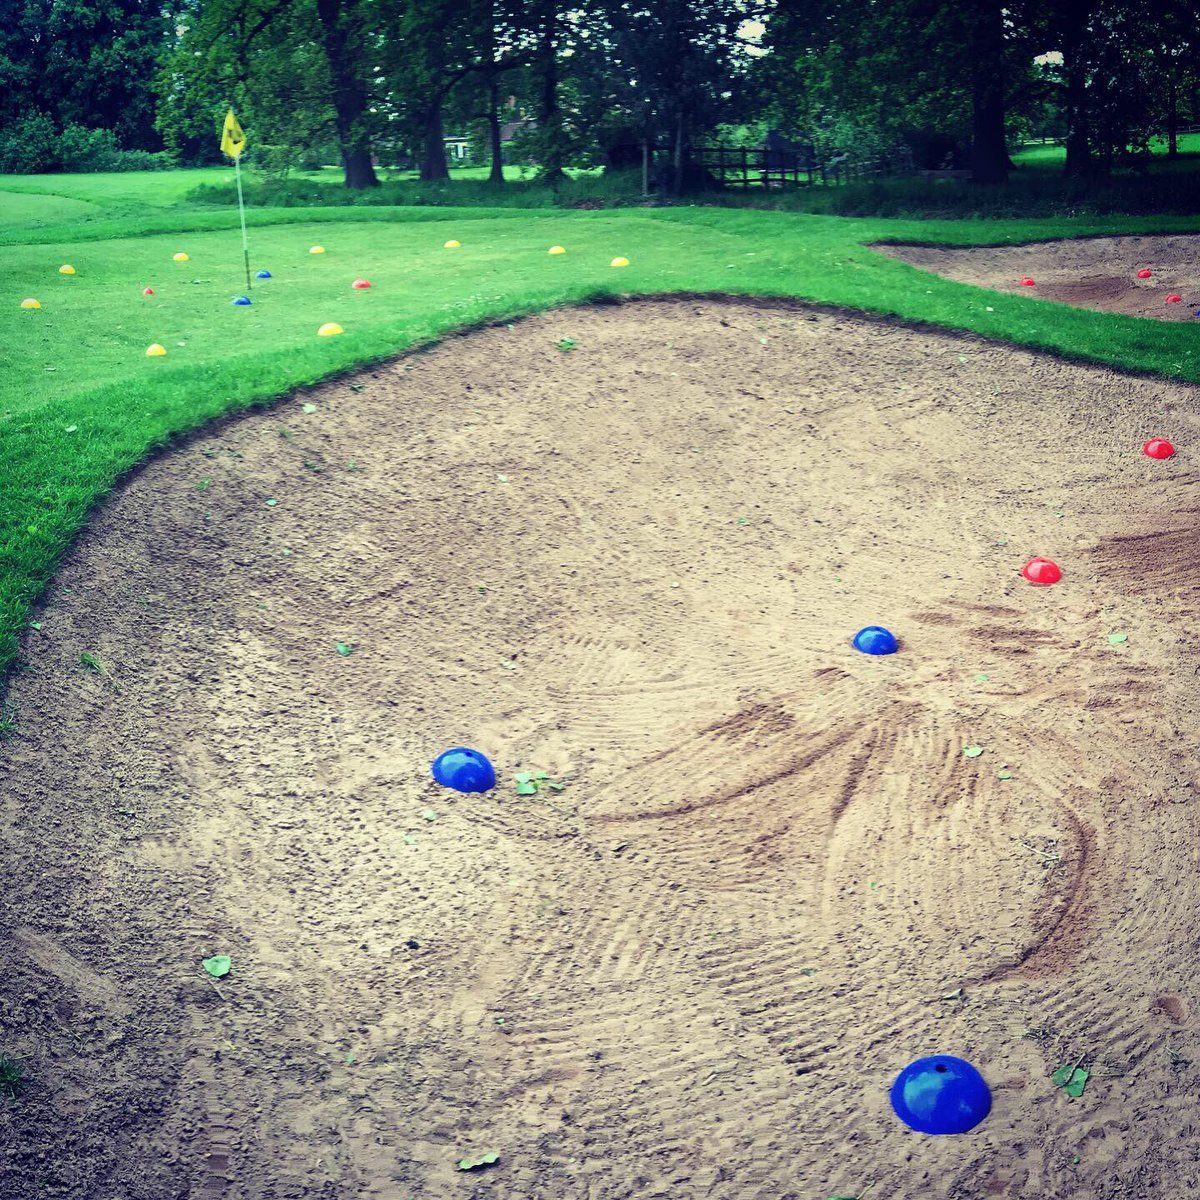 test Twitter Media - All set for the start of a busy weekend of Junior Golf. Starting with our IPGC Juniors  ➡️ Quick 'Cricket' warm up  ➡️ Bunker Play (understanding how the Club works) Should be fun #GirlsGolfRocks #GrowTheGame  @MidlandsGolfer @EnglandGolf @staffsgolf @GolfRootsHQ @PGAmag @ThePGA https://t.co/uX7nECvL1C